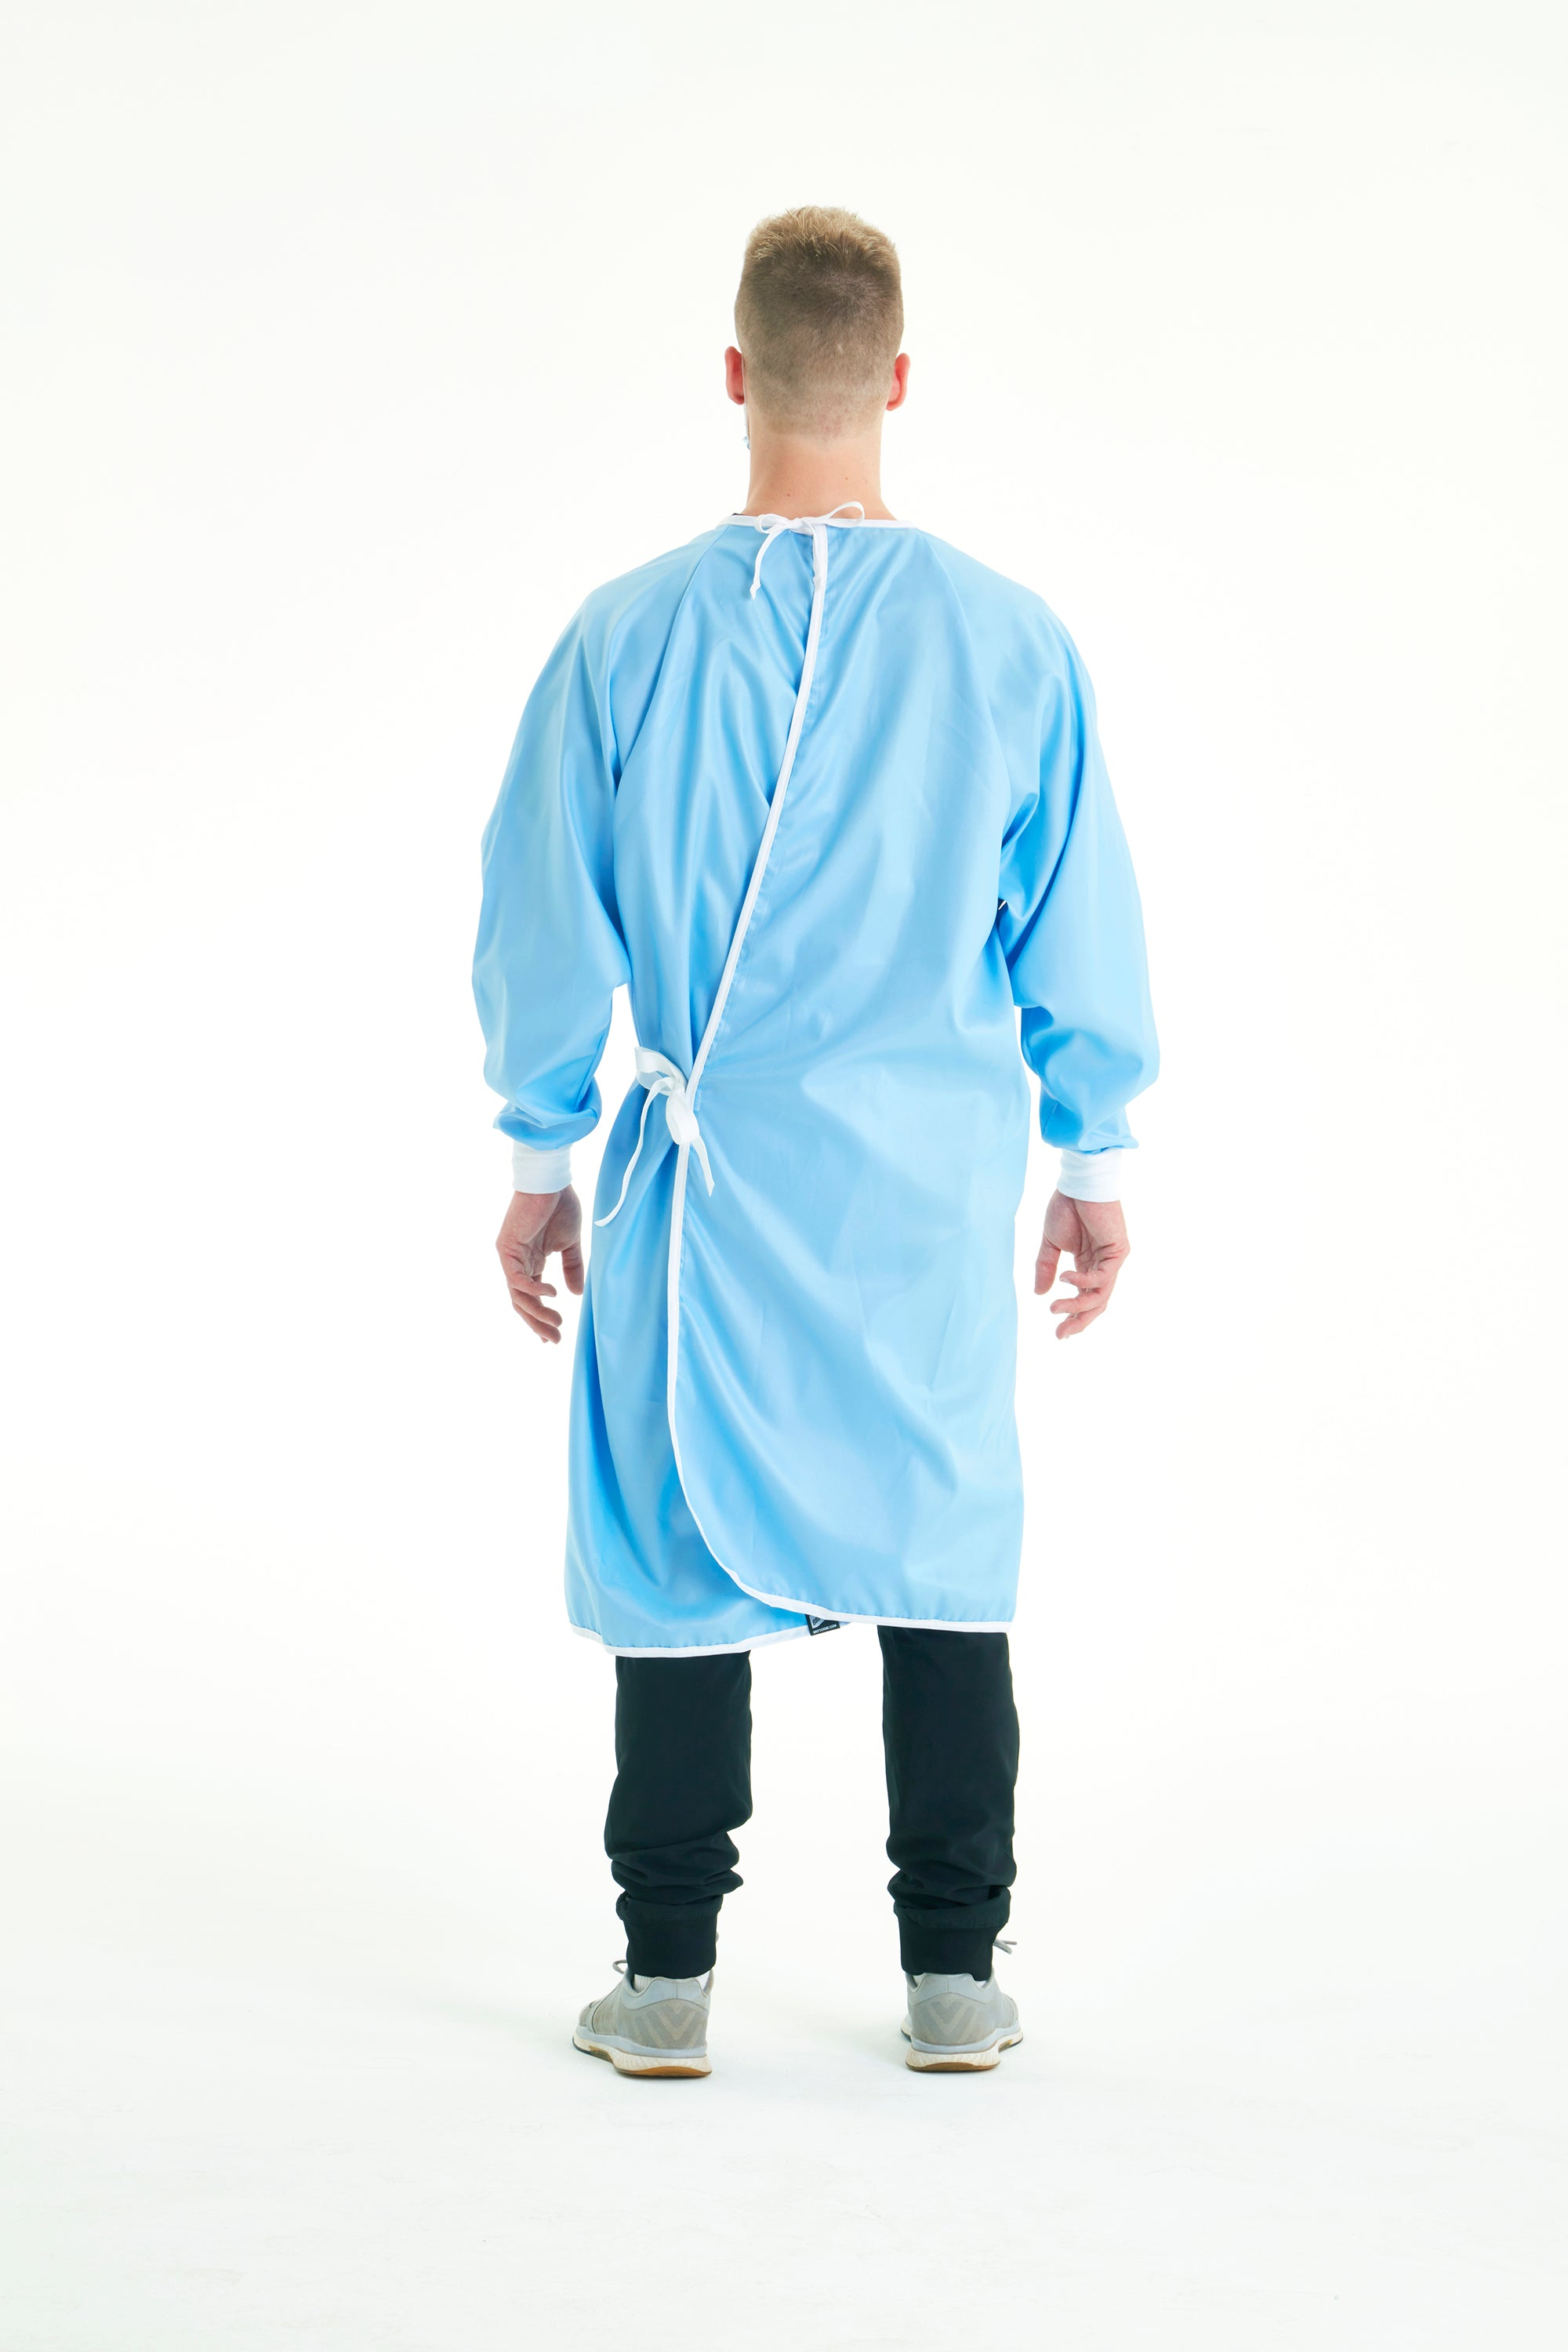 back-side-of-reusable-level-2-blue-gowns